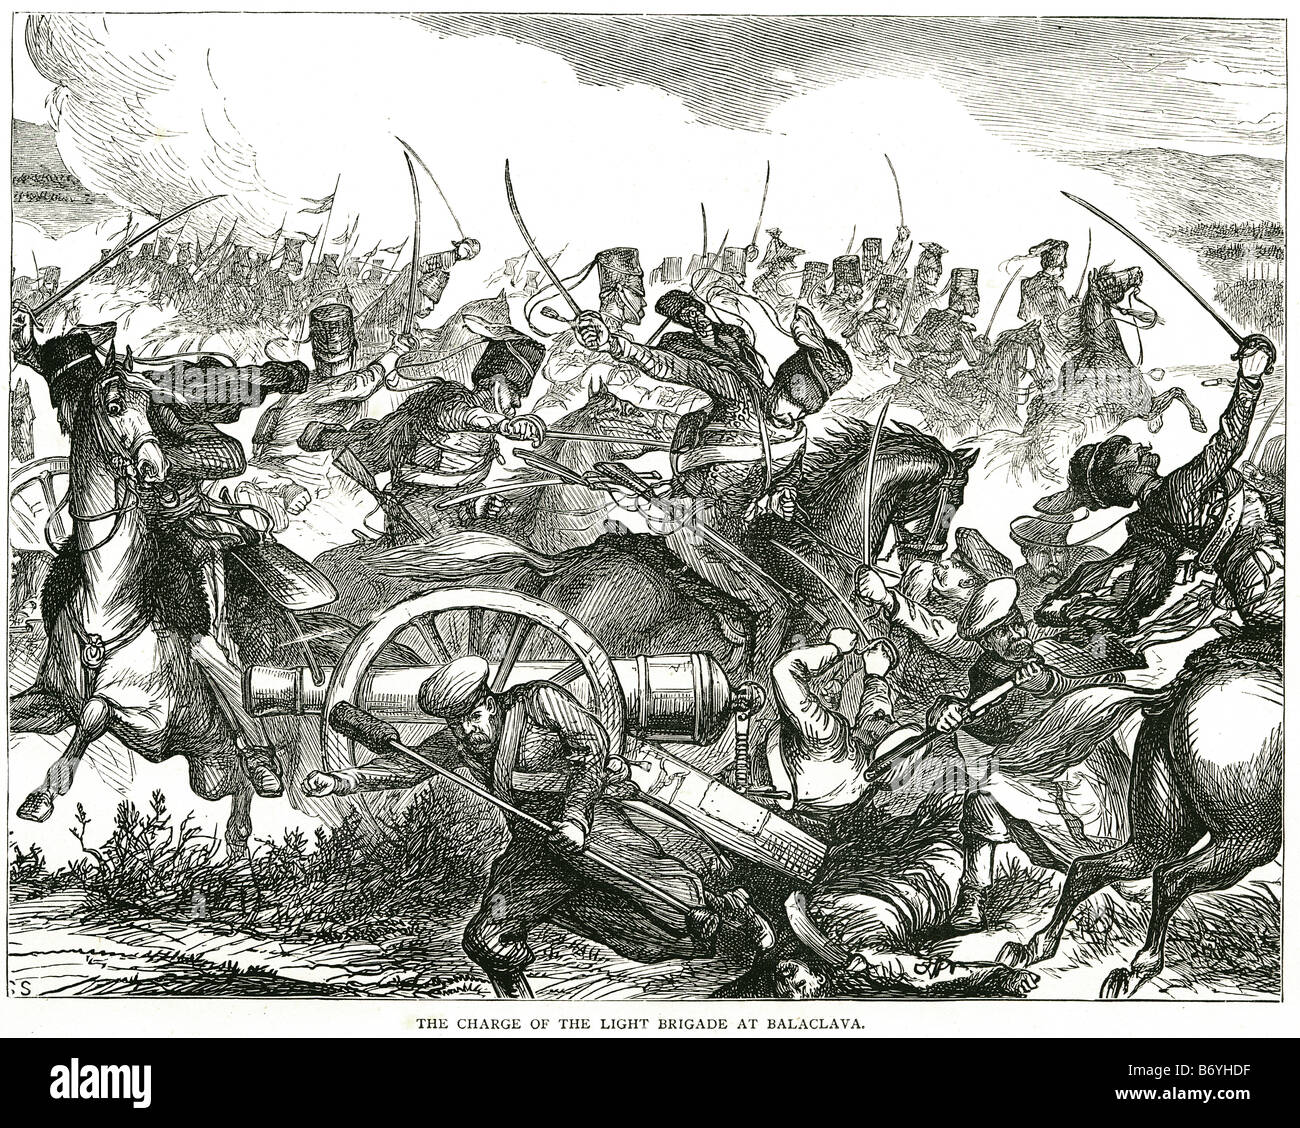 the charge of the light brigade at balaclava 25 October 1854 Crimean War Anglo-French-Turkish campaign - Stock Image